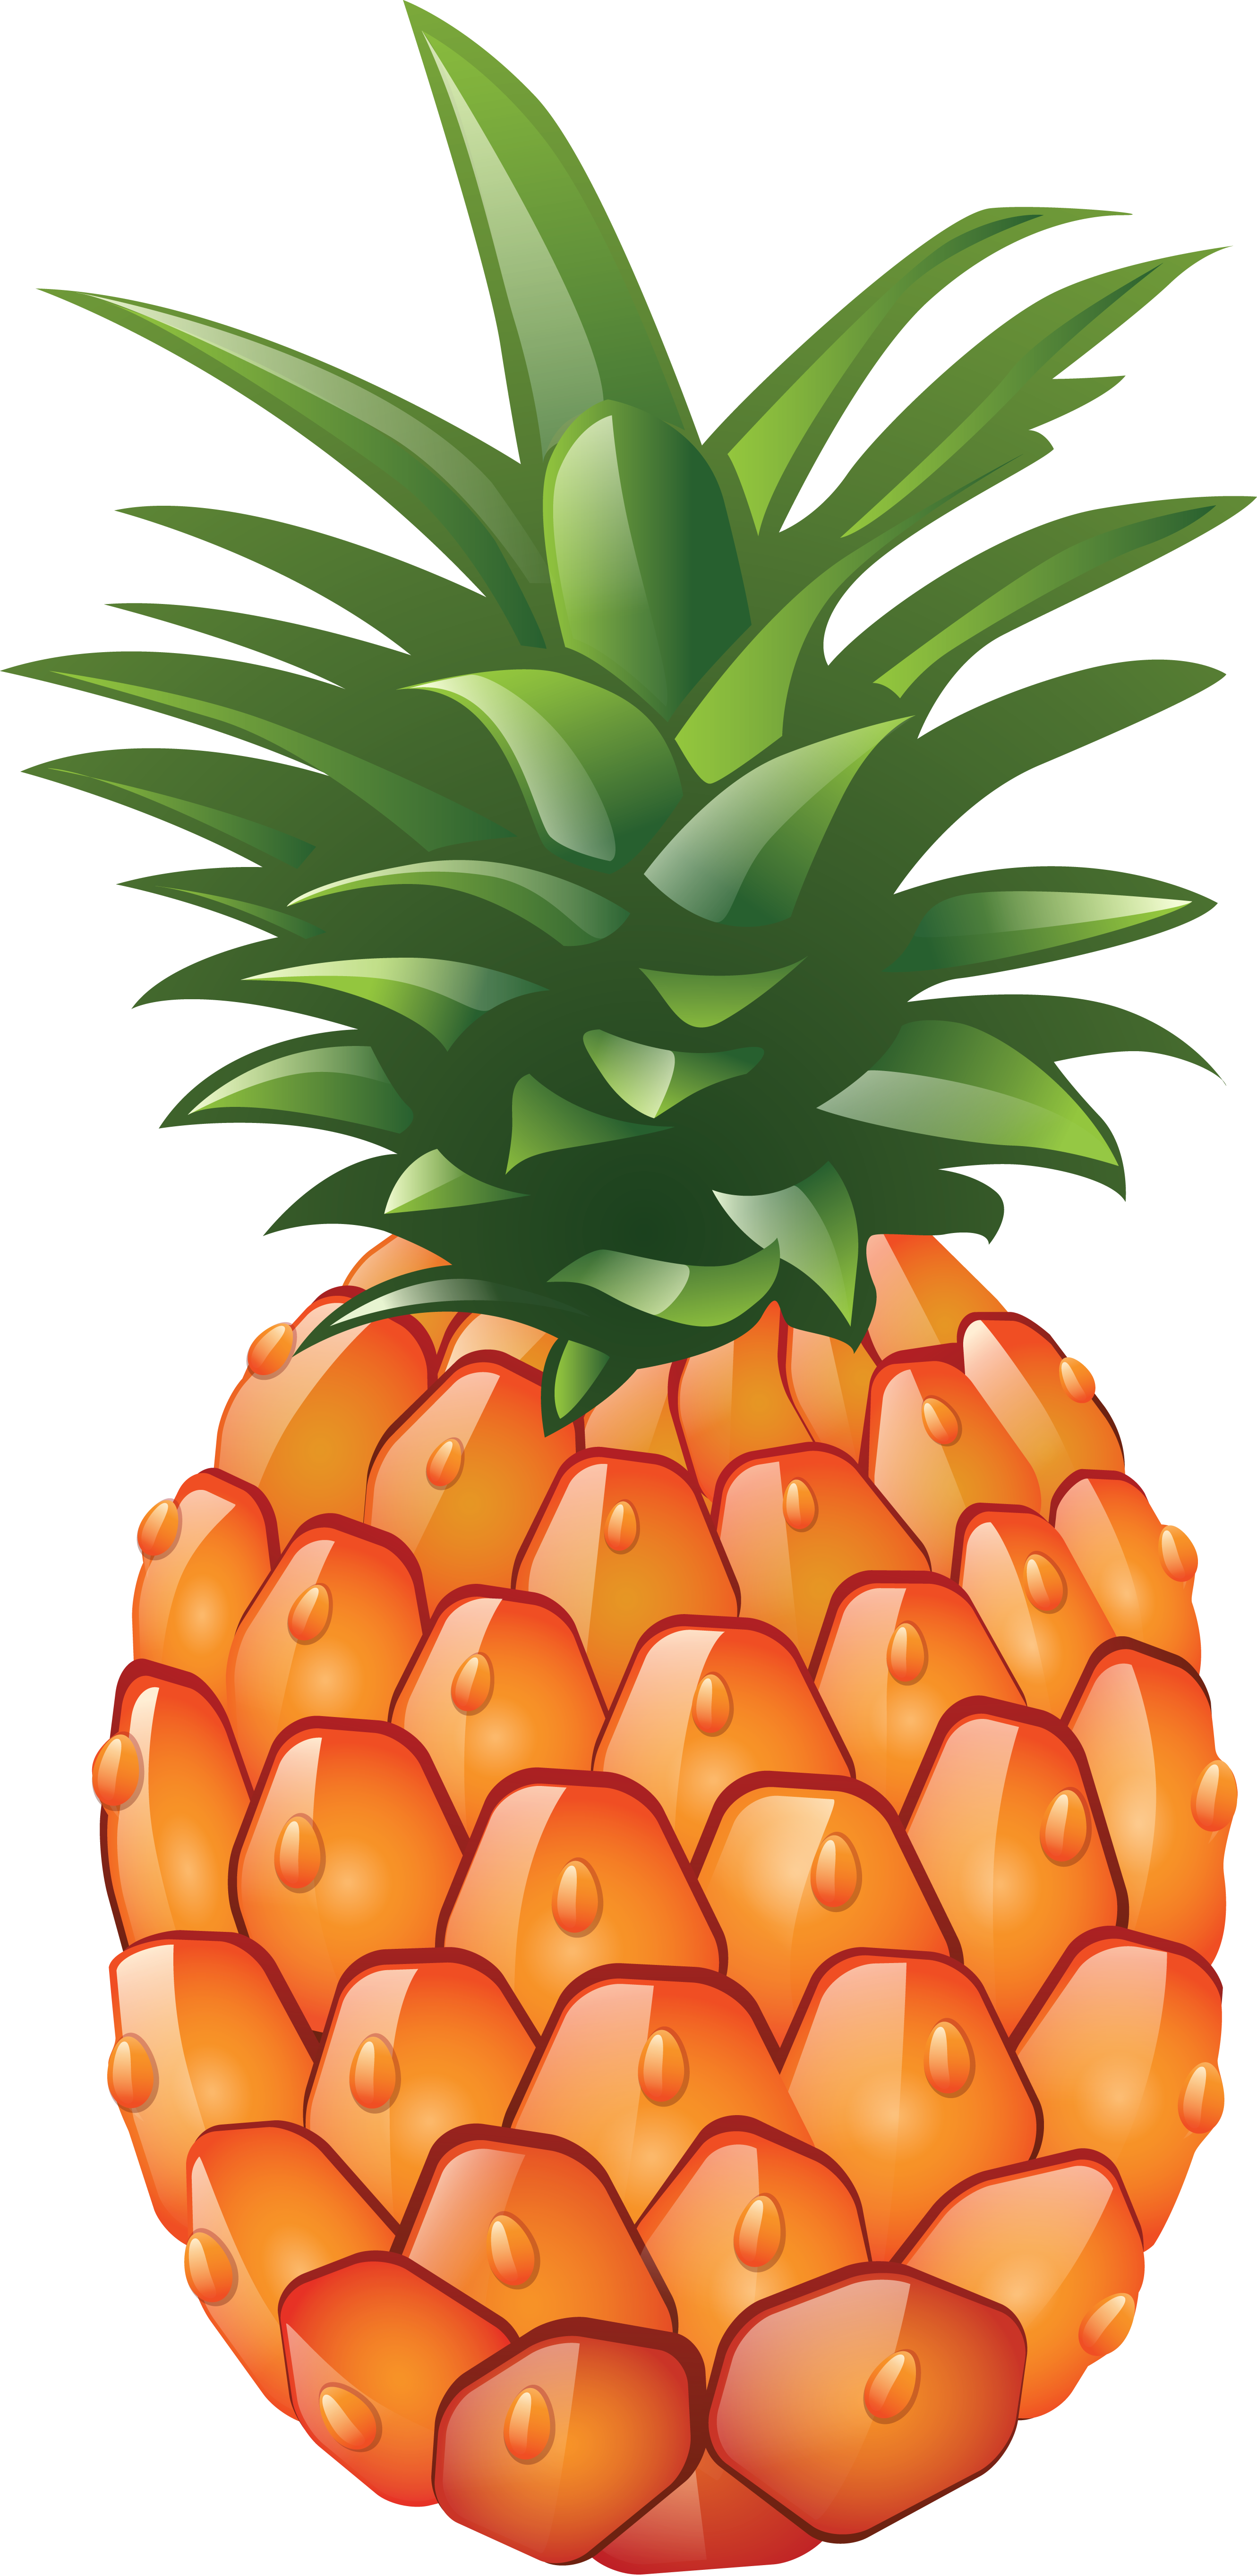 Pineapple Fruit Transparent PNG Images Free Download.